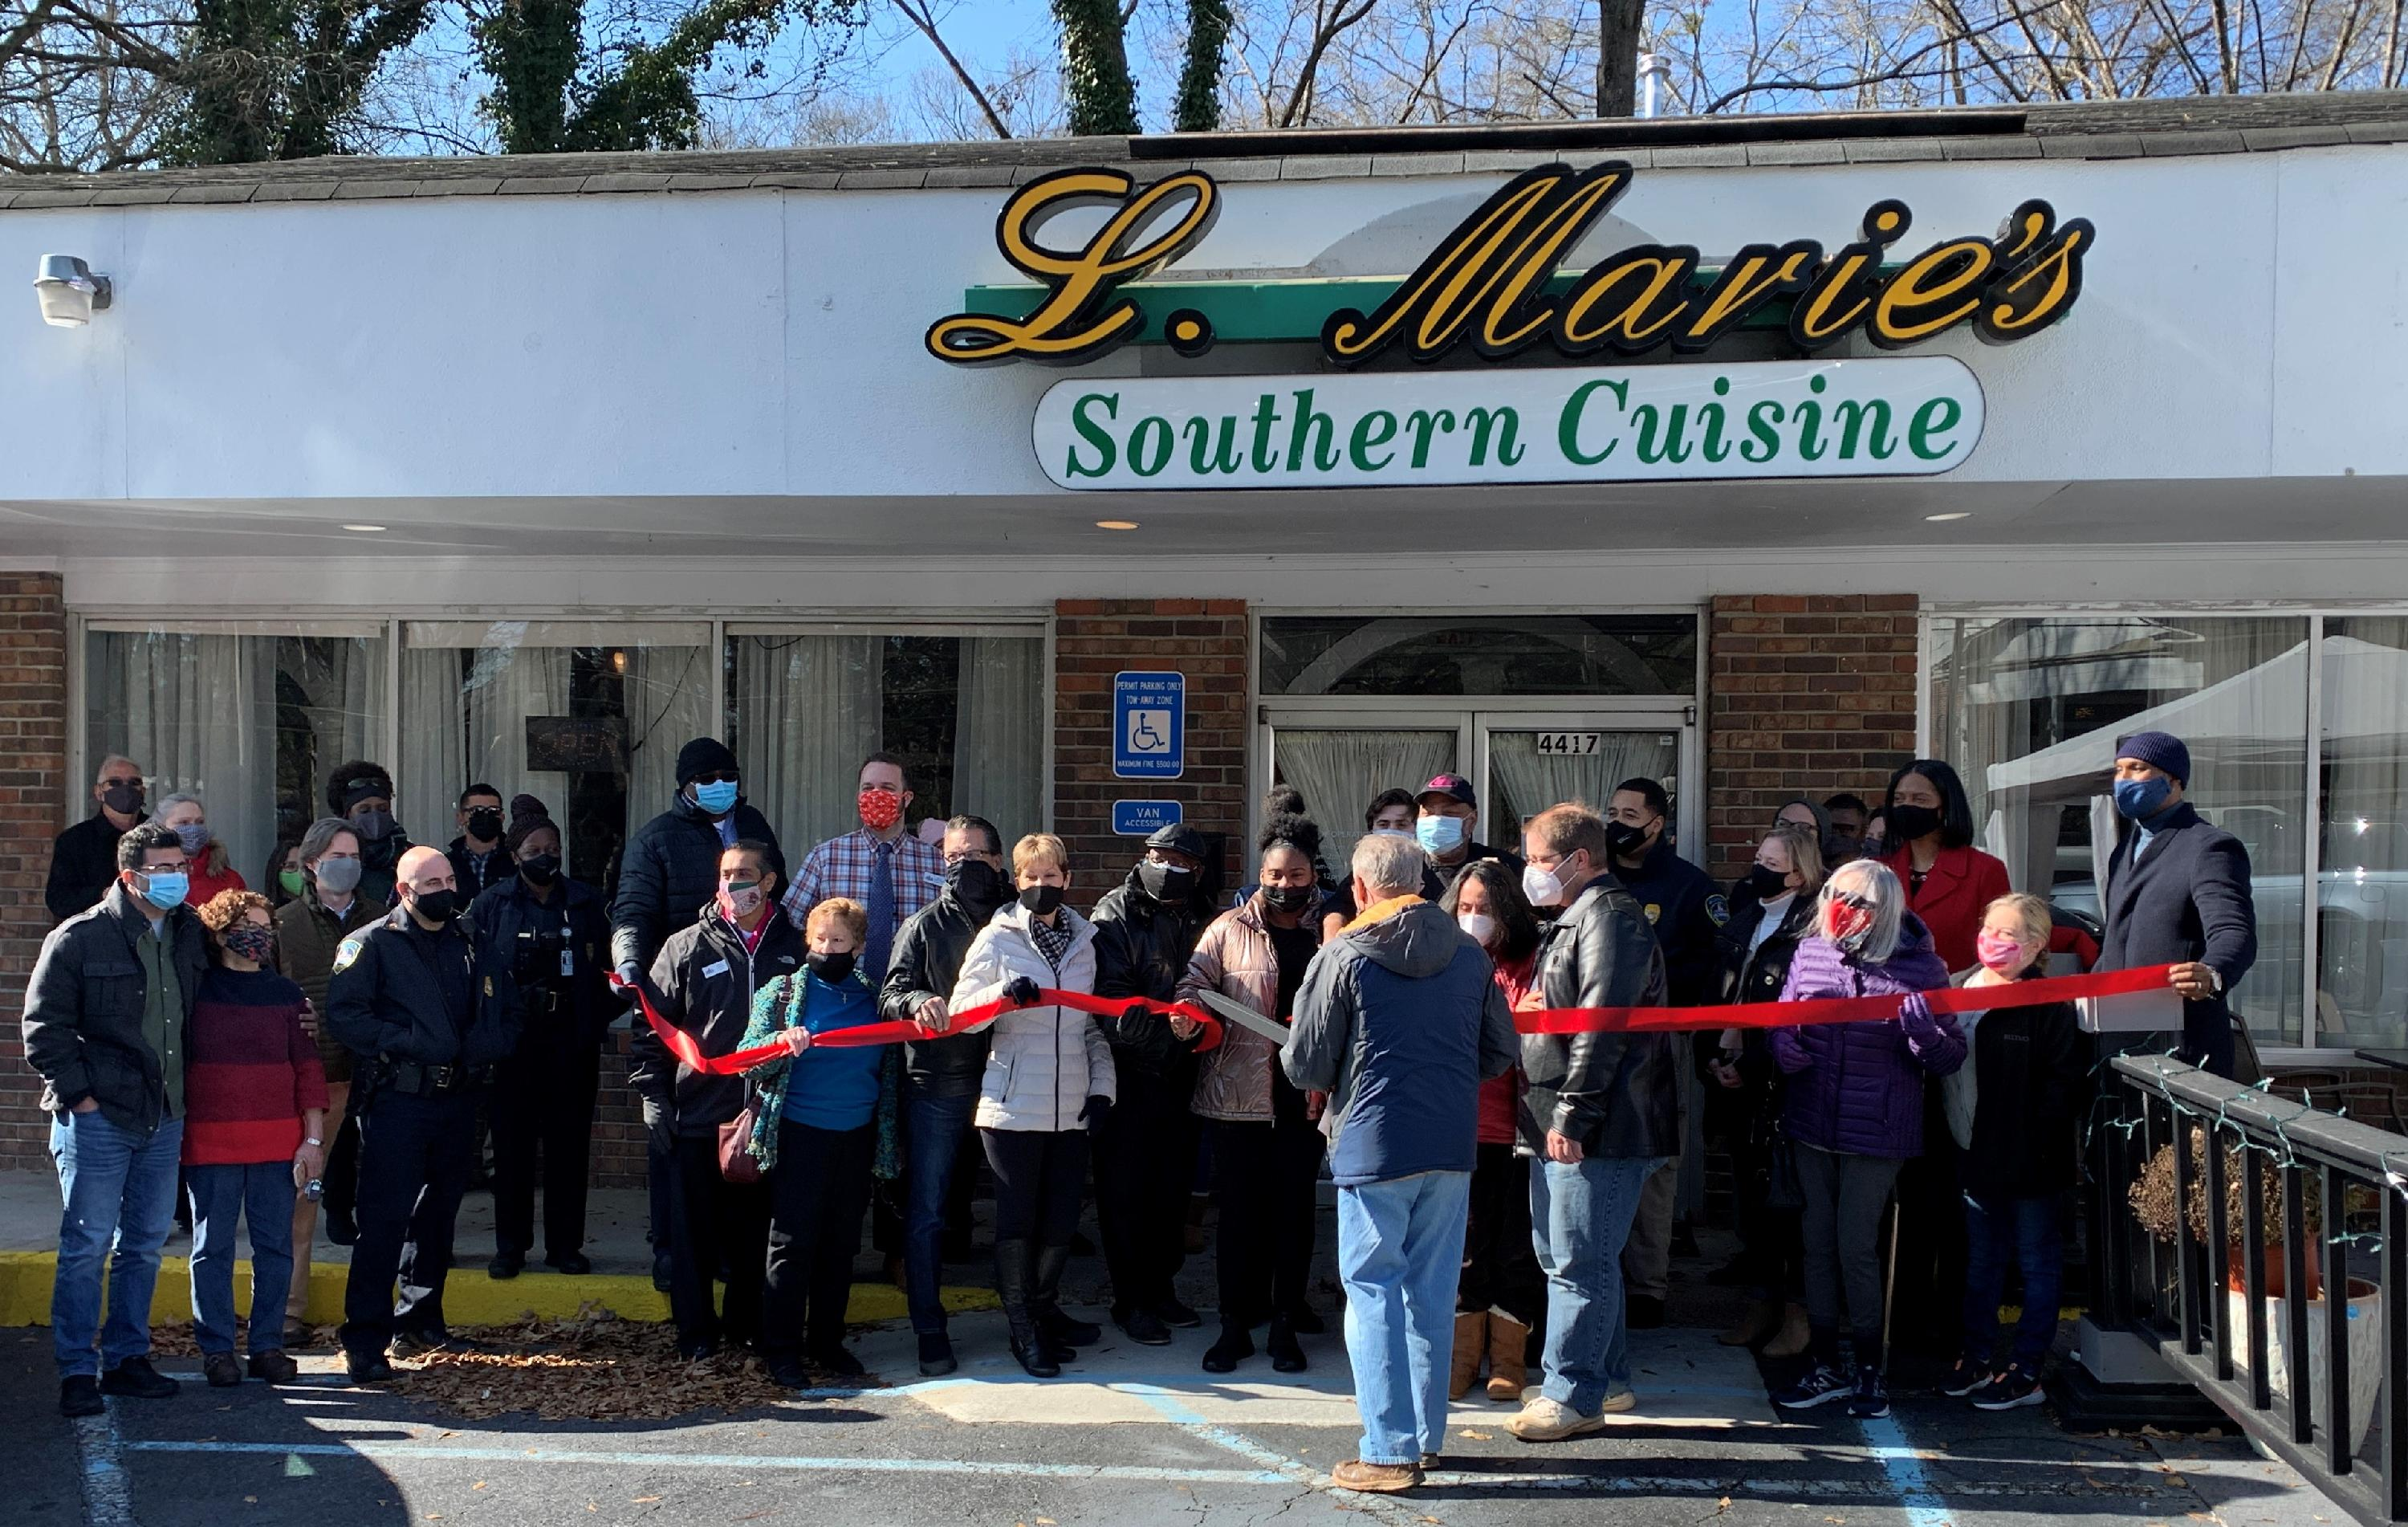 L Maire's Southern Cuisine Ribbon Cutting